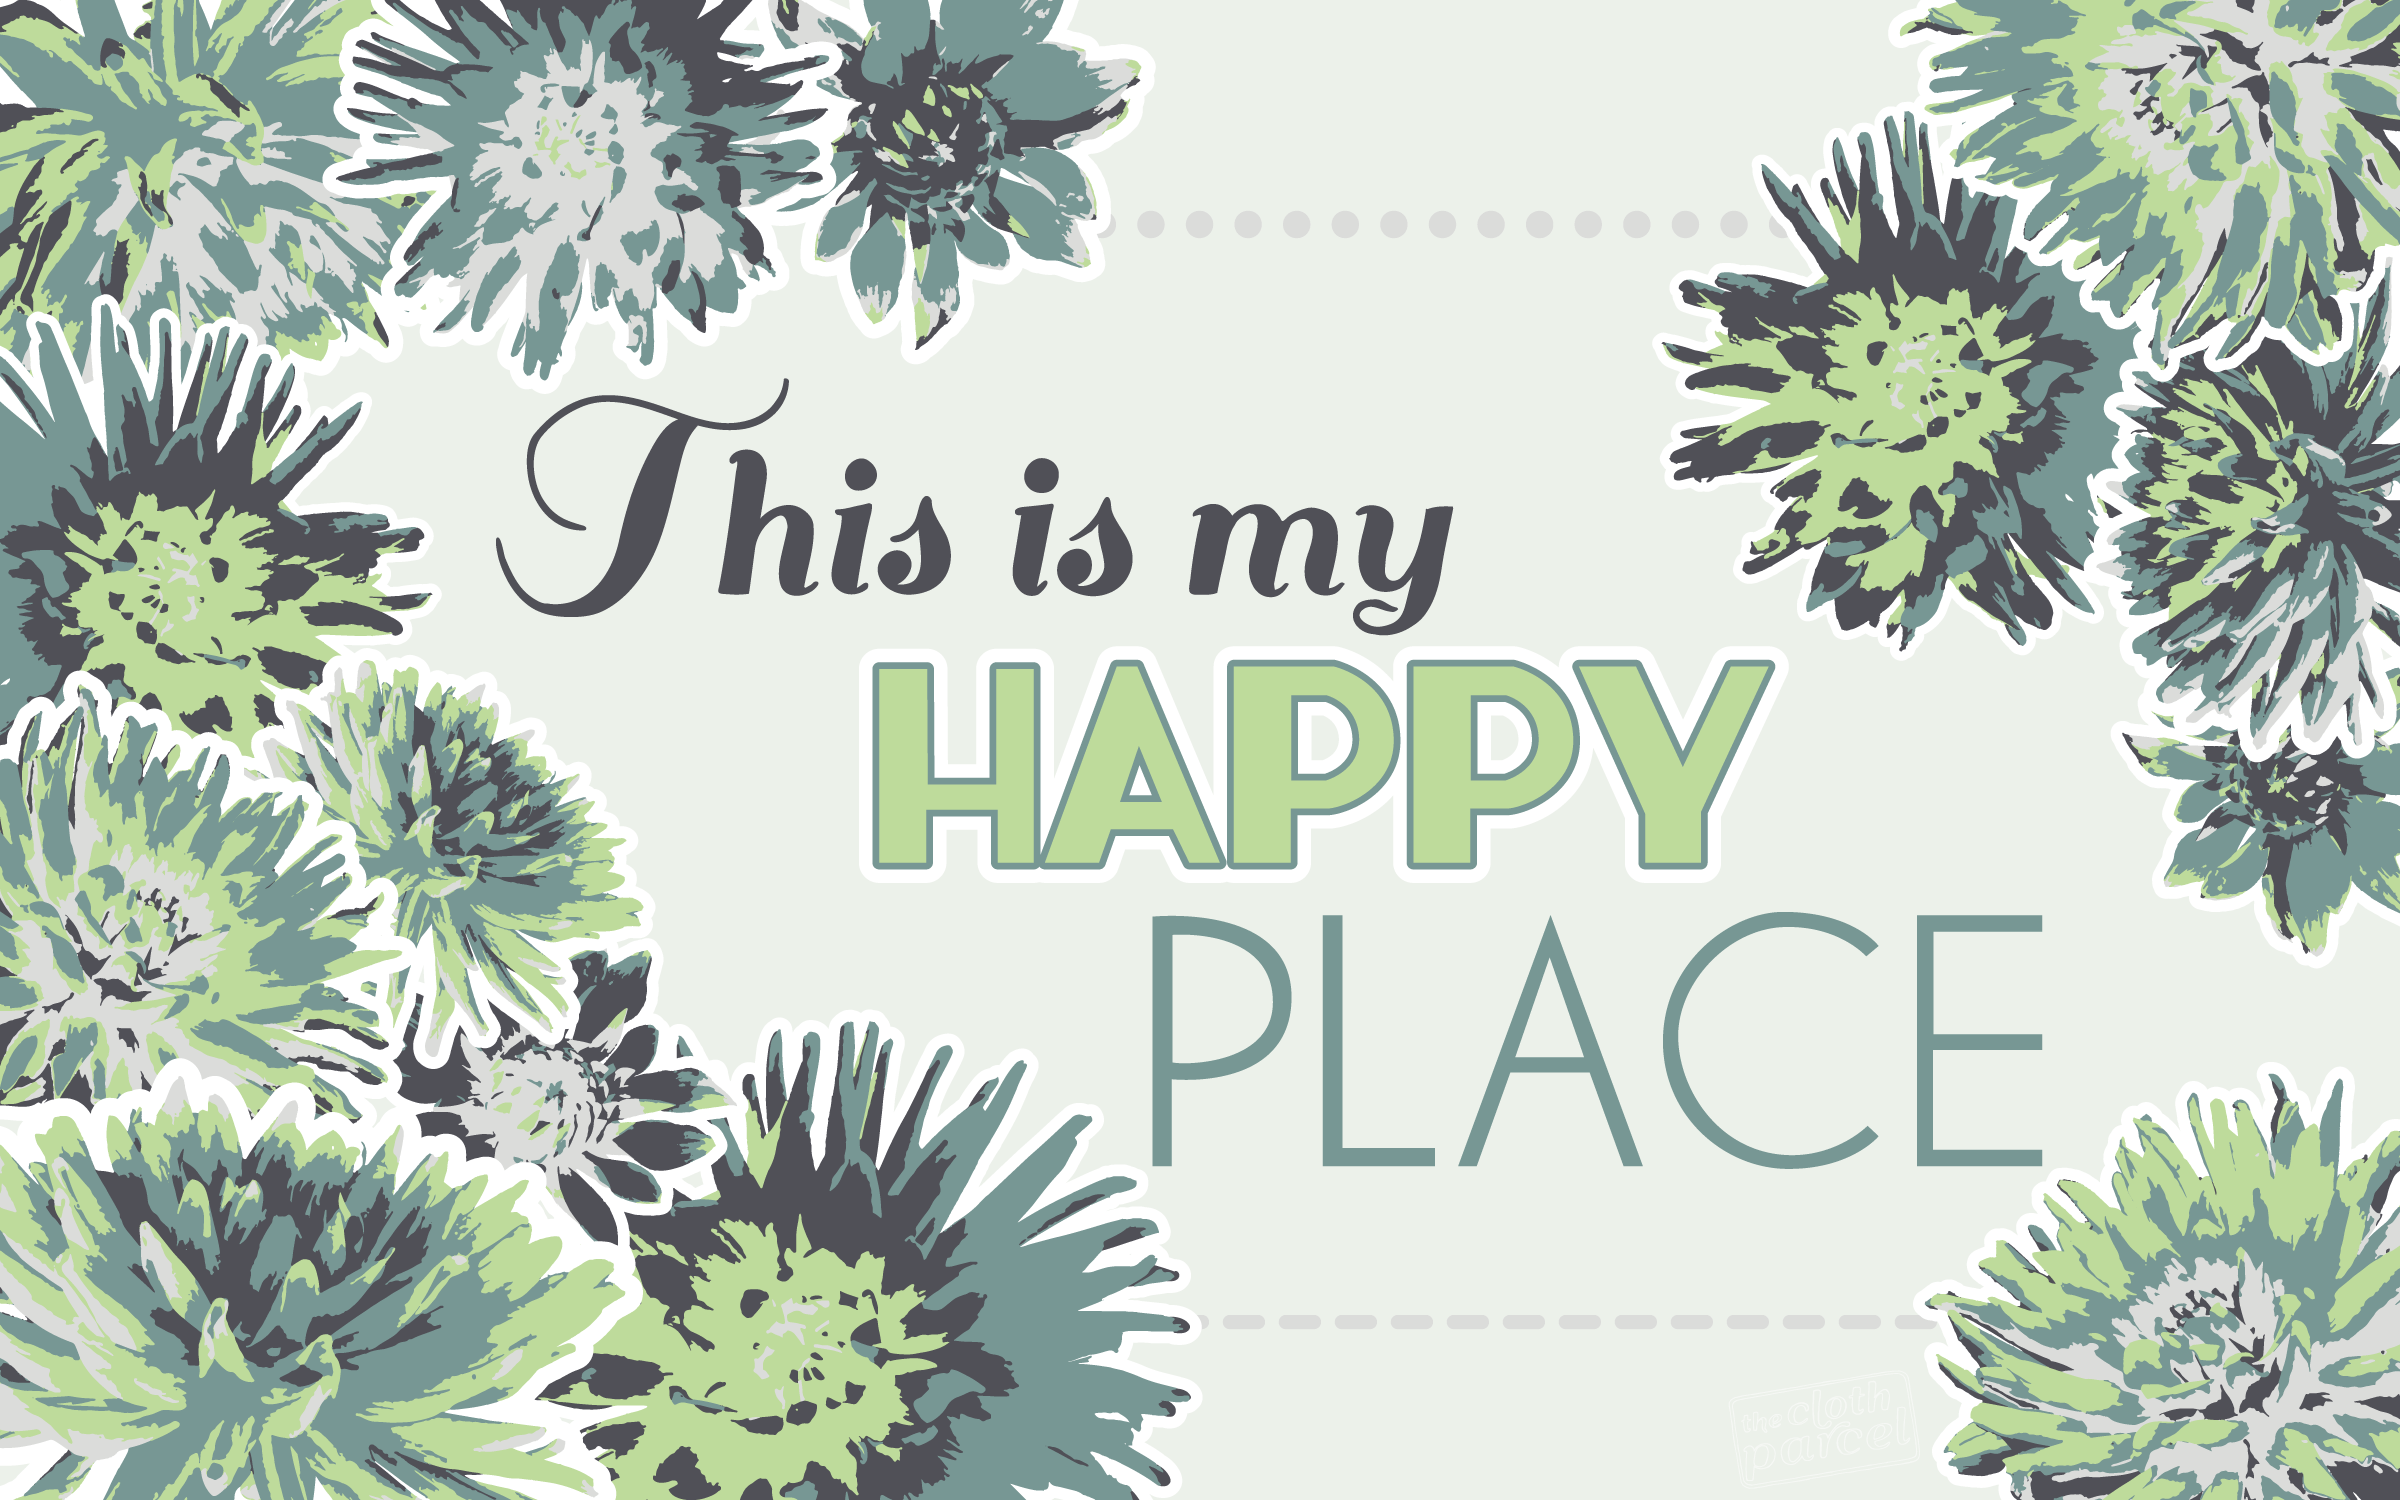 Design Freebies: This Is My Happy Place